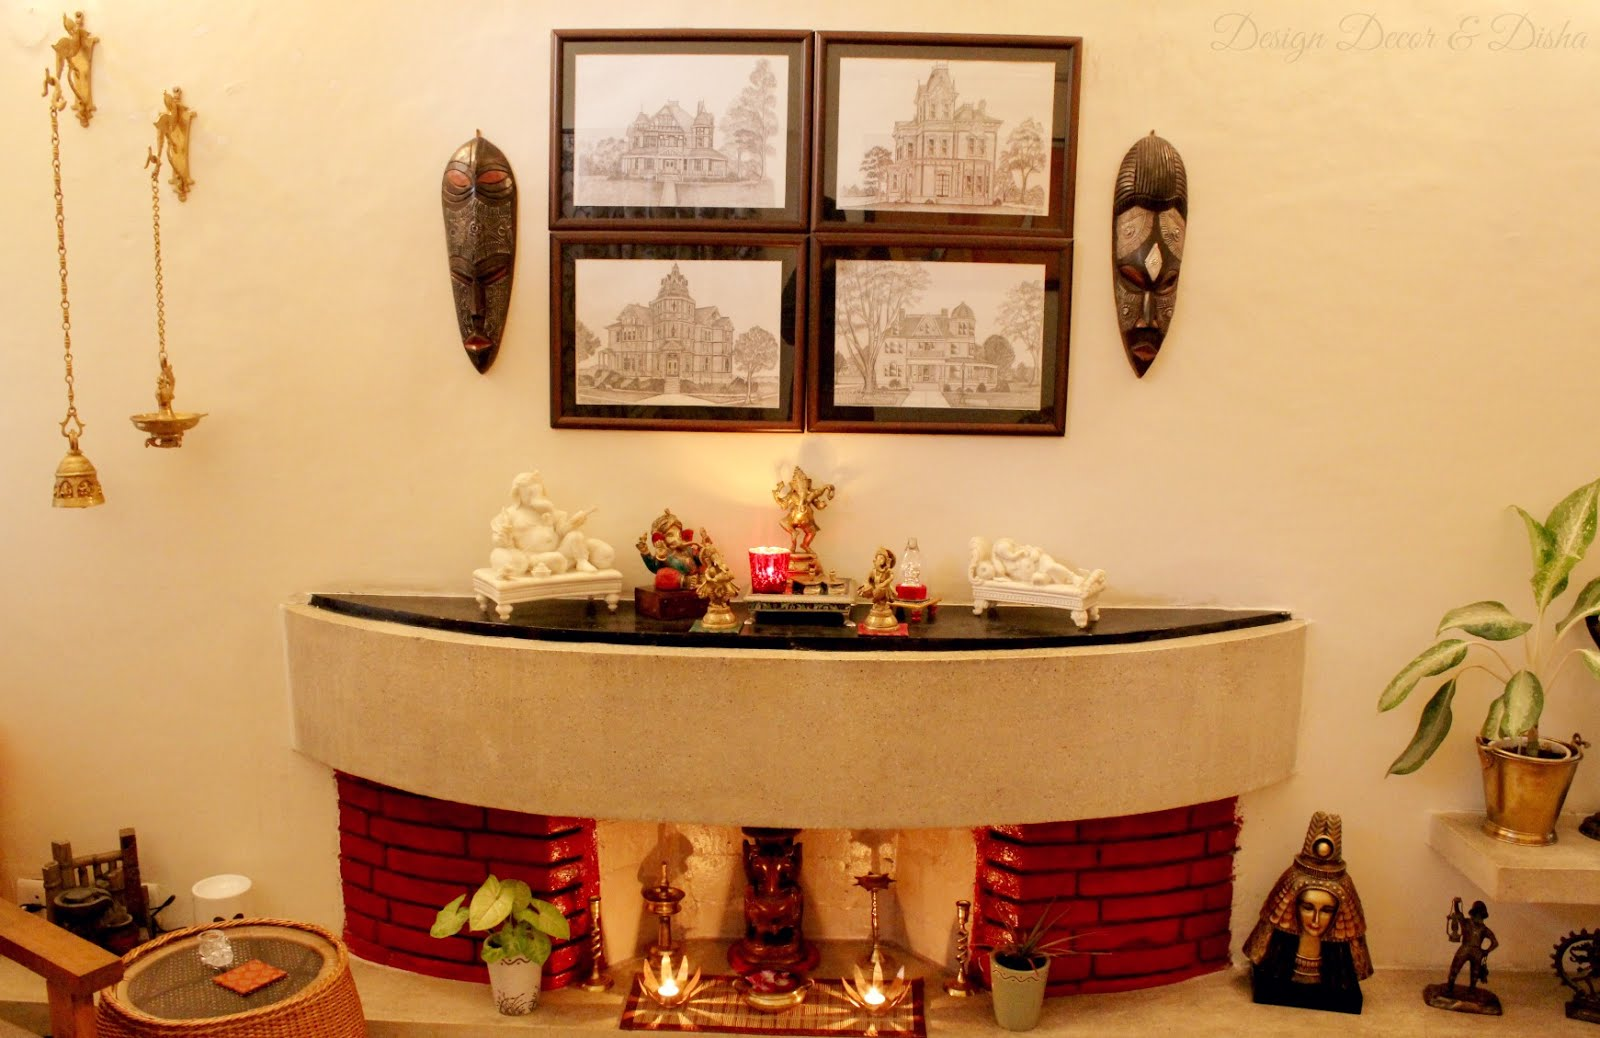 Home Design Ideas India: An Indian Design & Decor Blog: Home